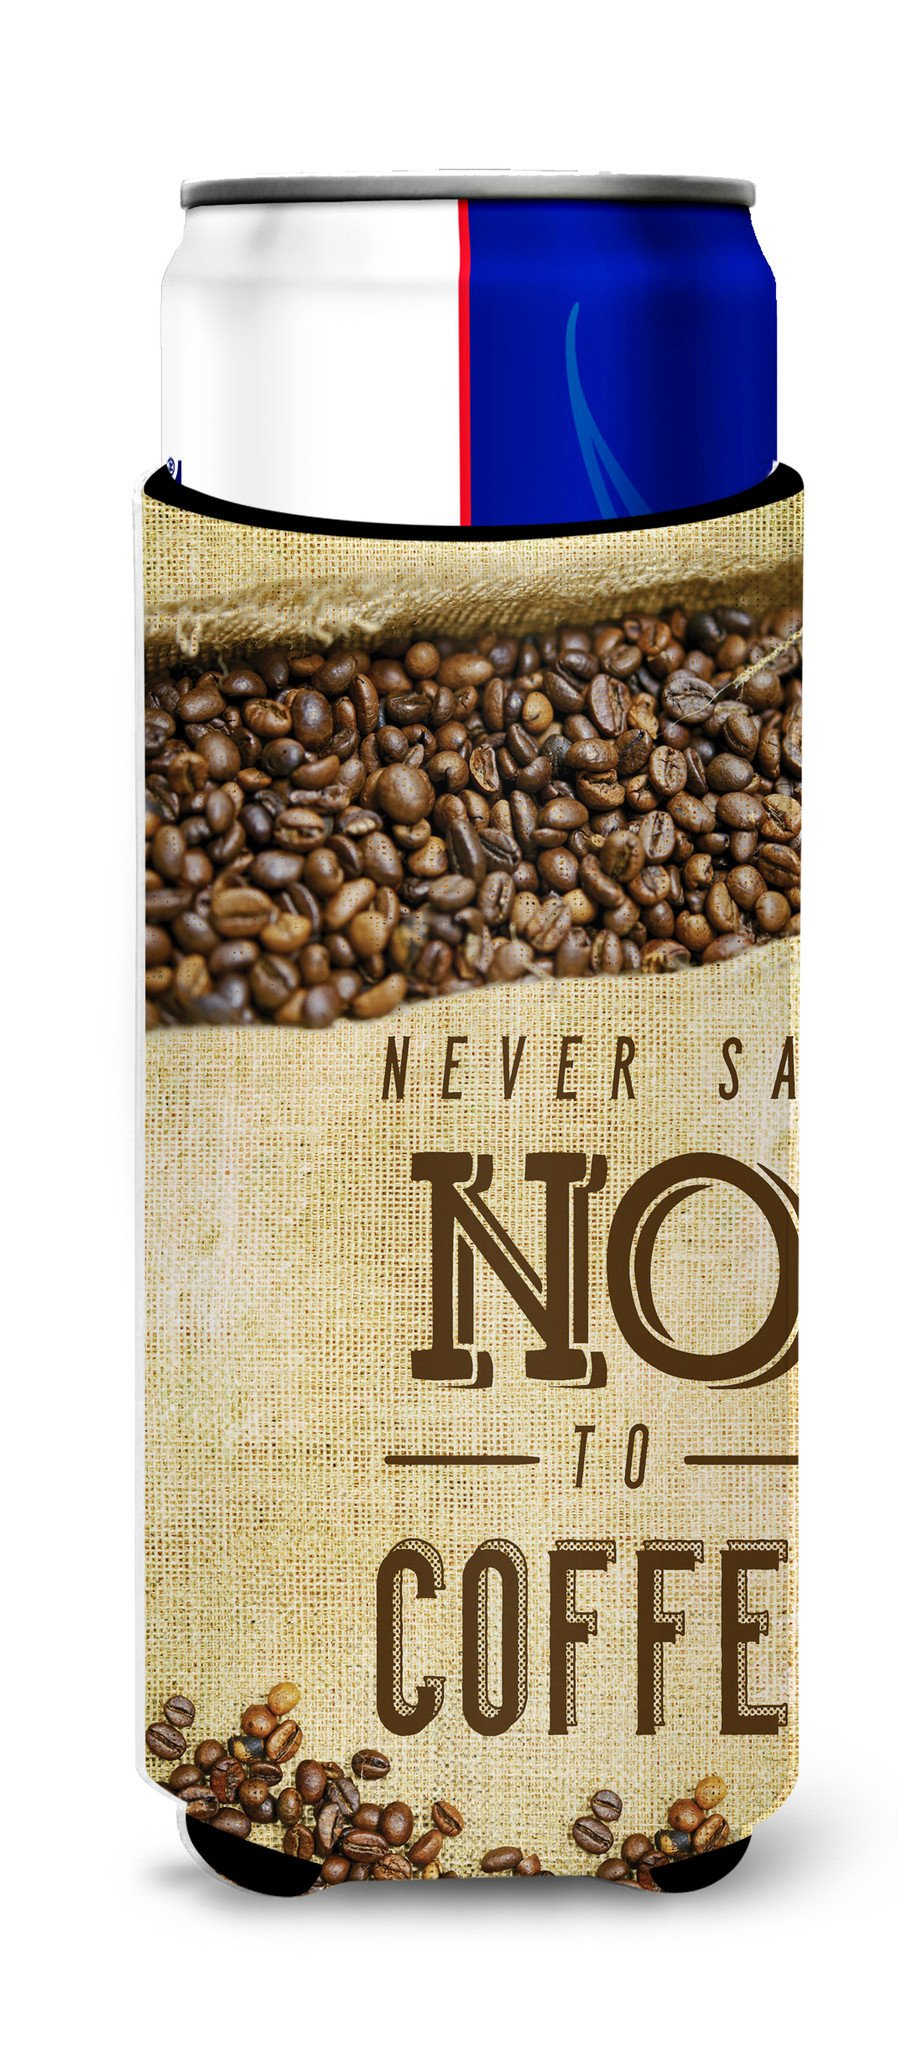 Never say No to Coffee Sign Michelob Ultra Hugger for slim cans BB5406MUK by Caroline's Treasures